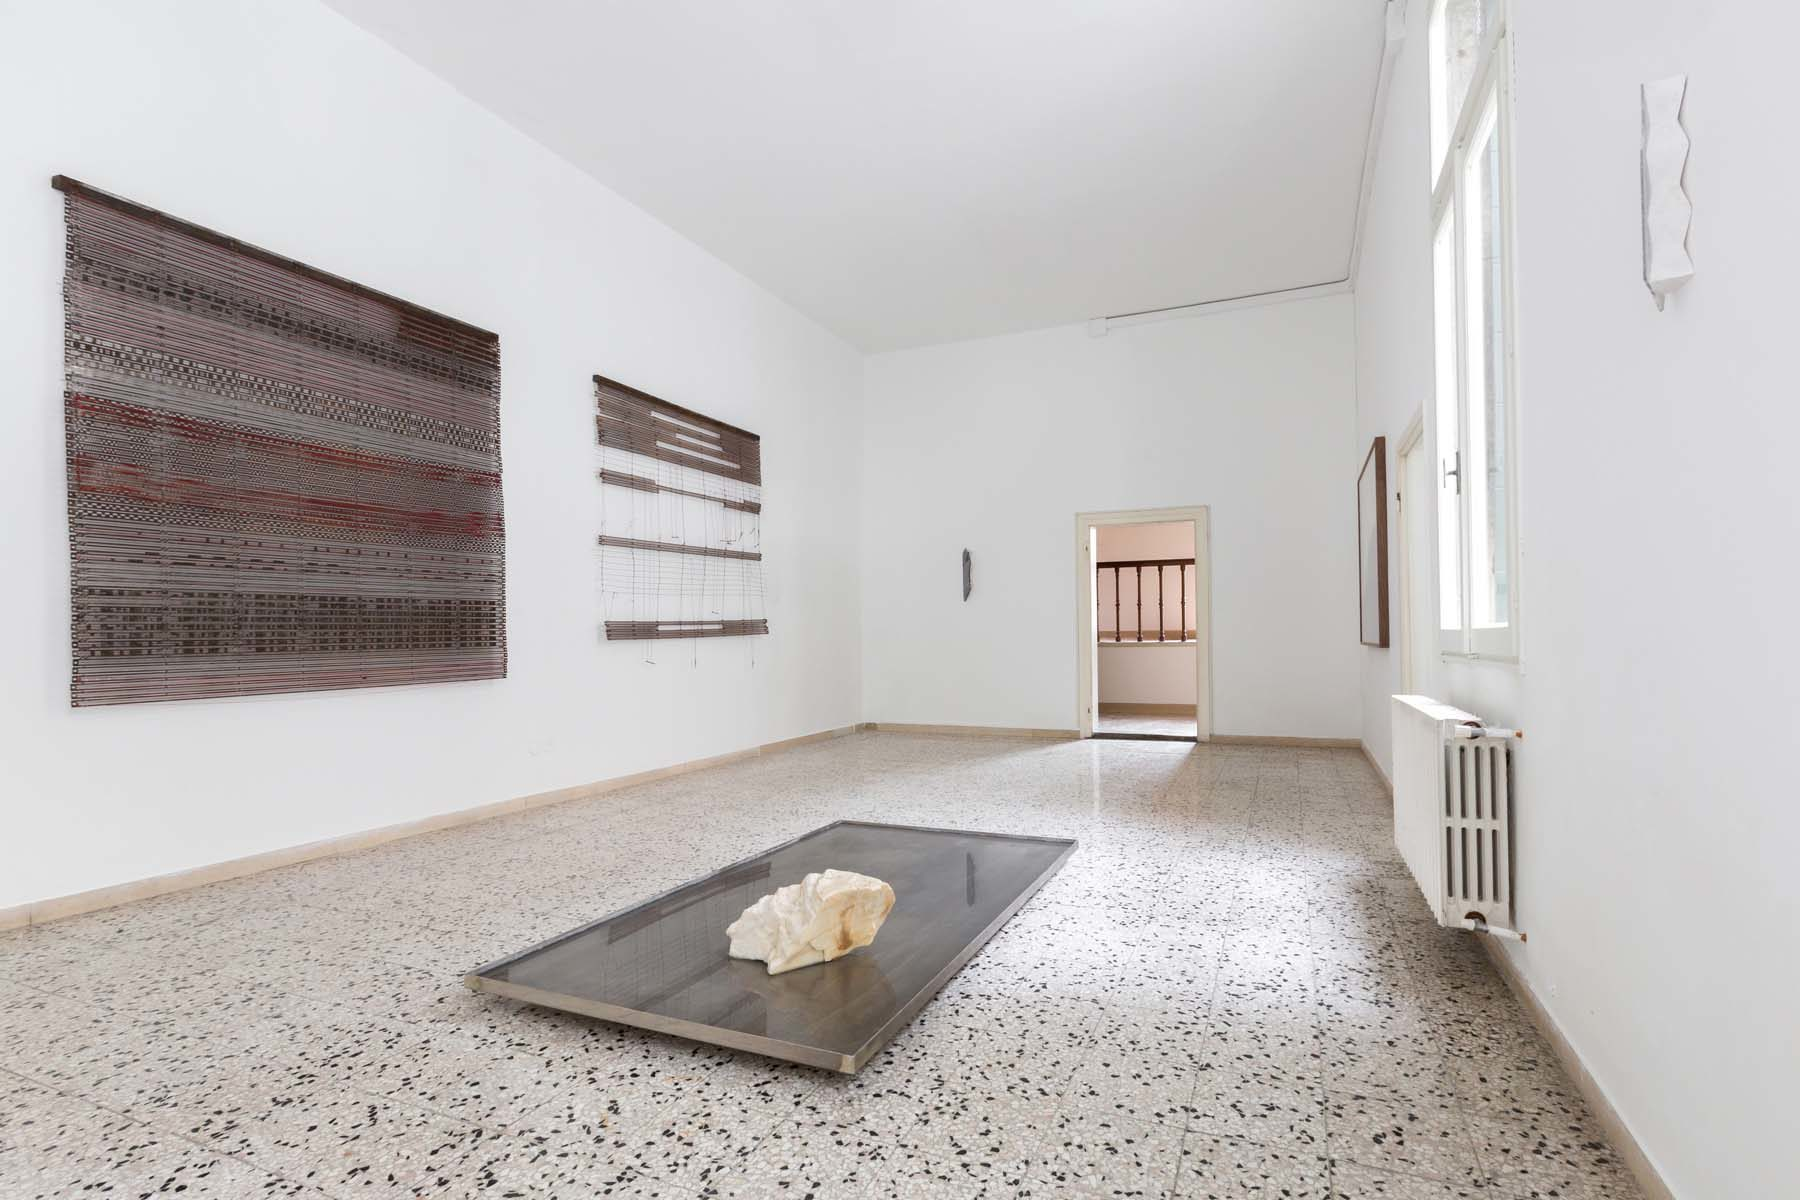 Reagents, installation view, Complesso dell'Ospedaletto, Venezia, ph. Nico Covre